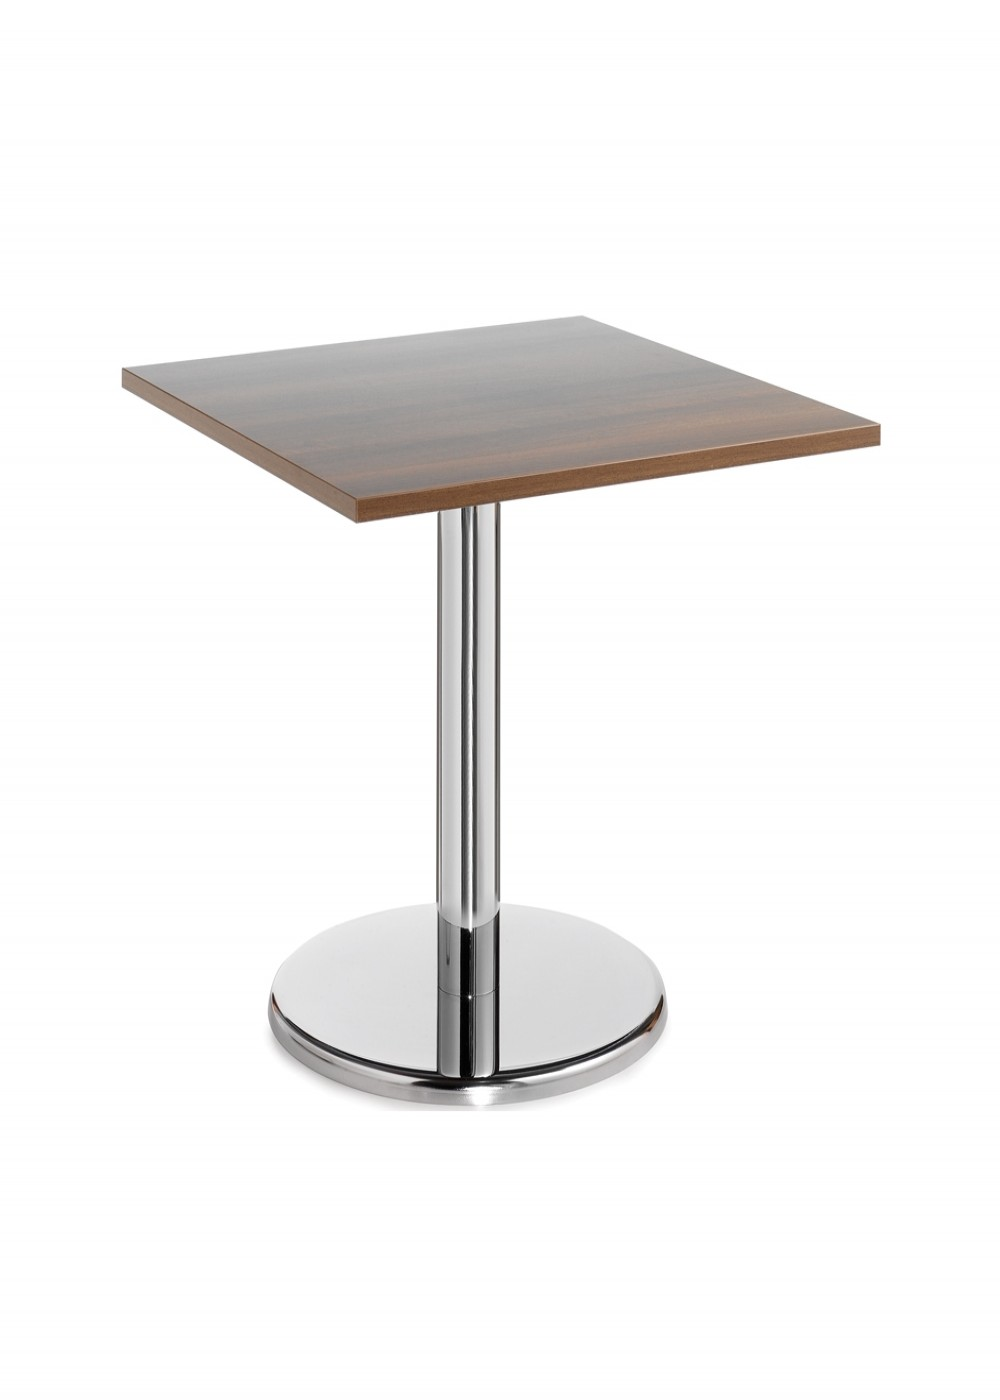 Square Bistro Chrome Leg Table   700mm High B7DHC   Enlarged View